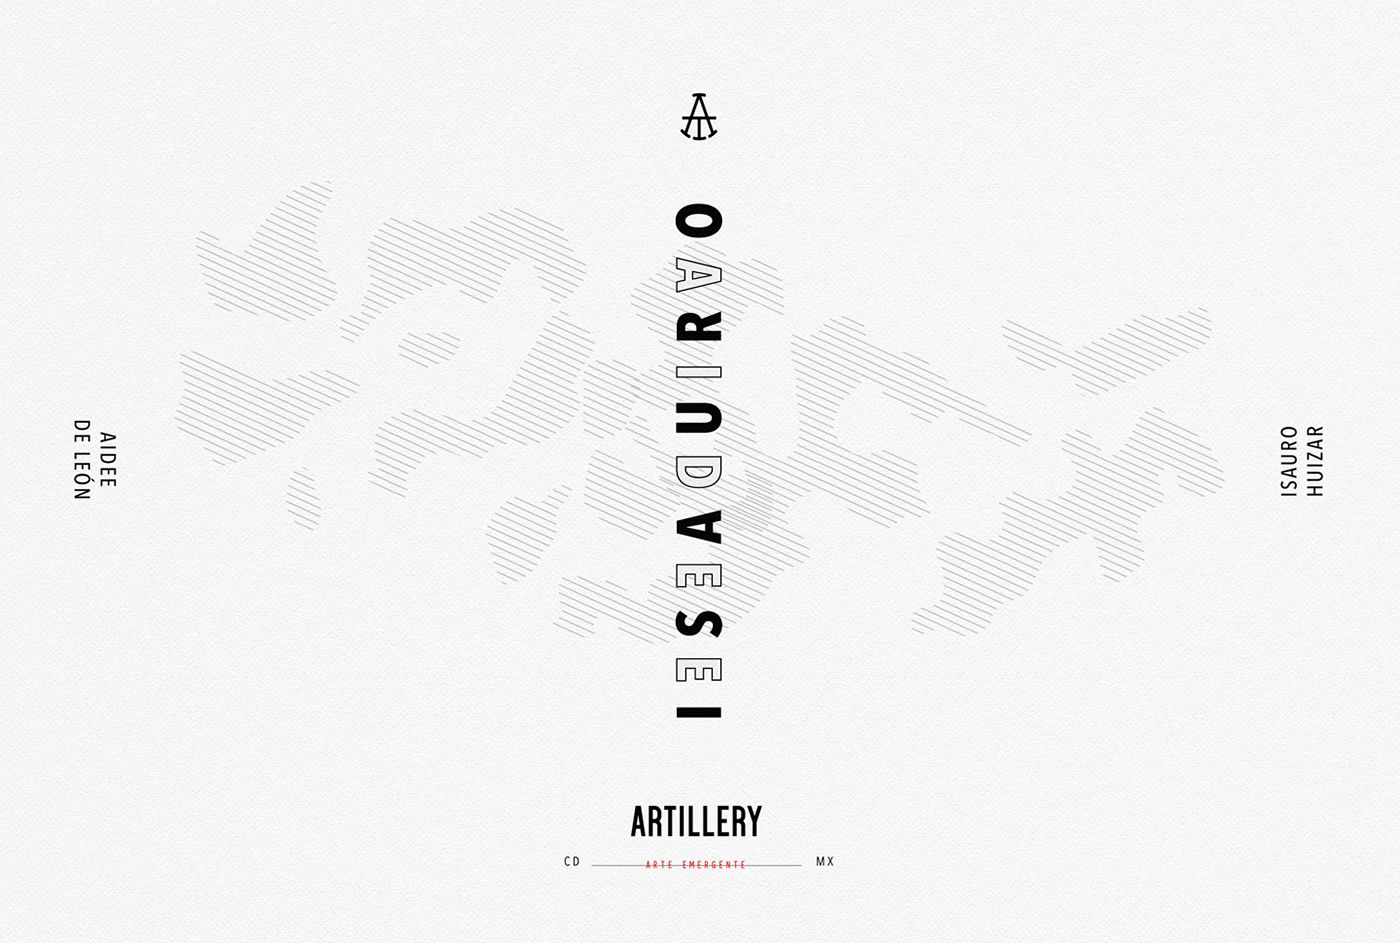 Artillery on Behance